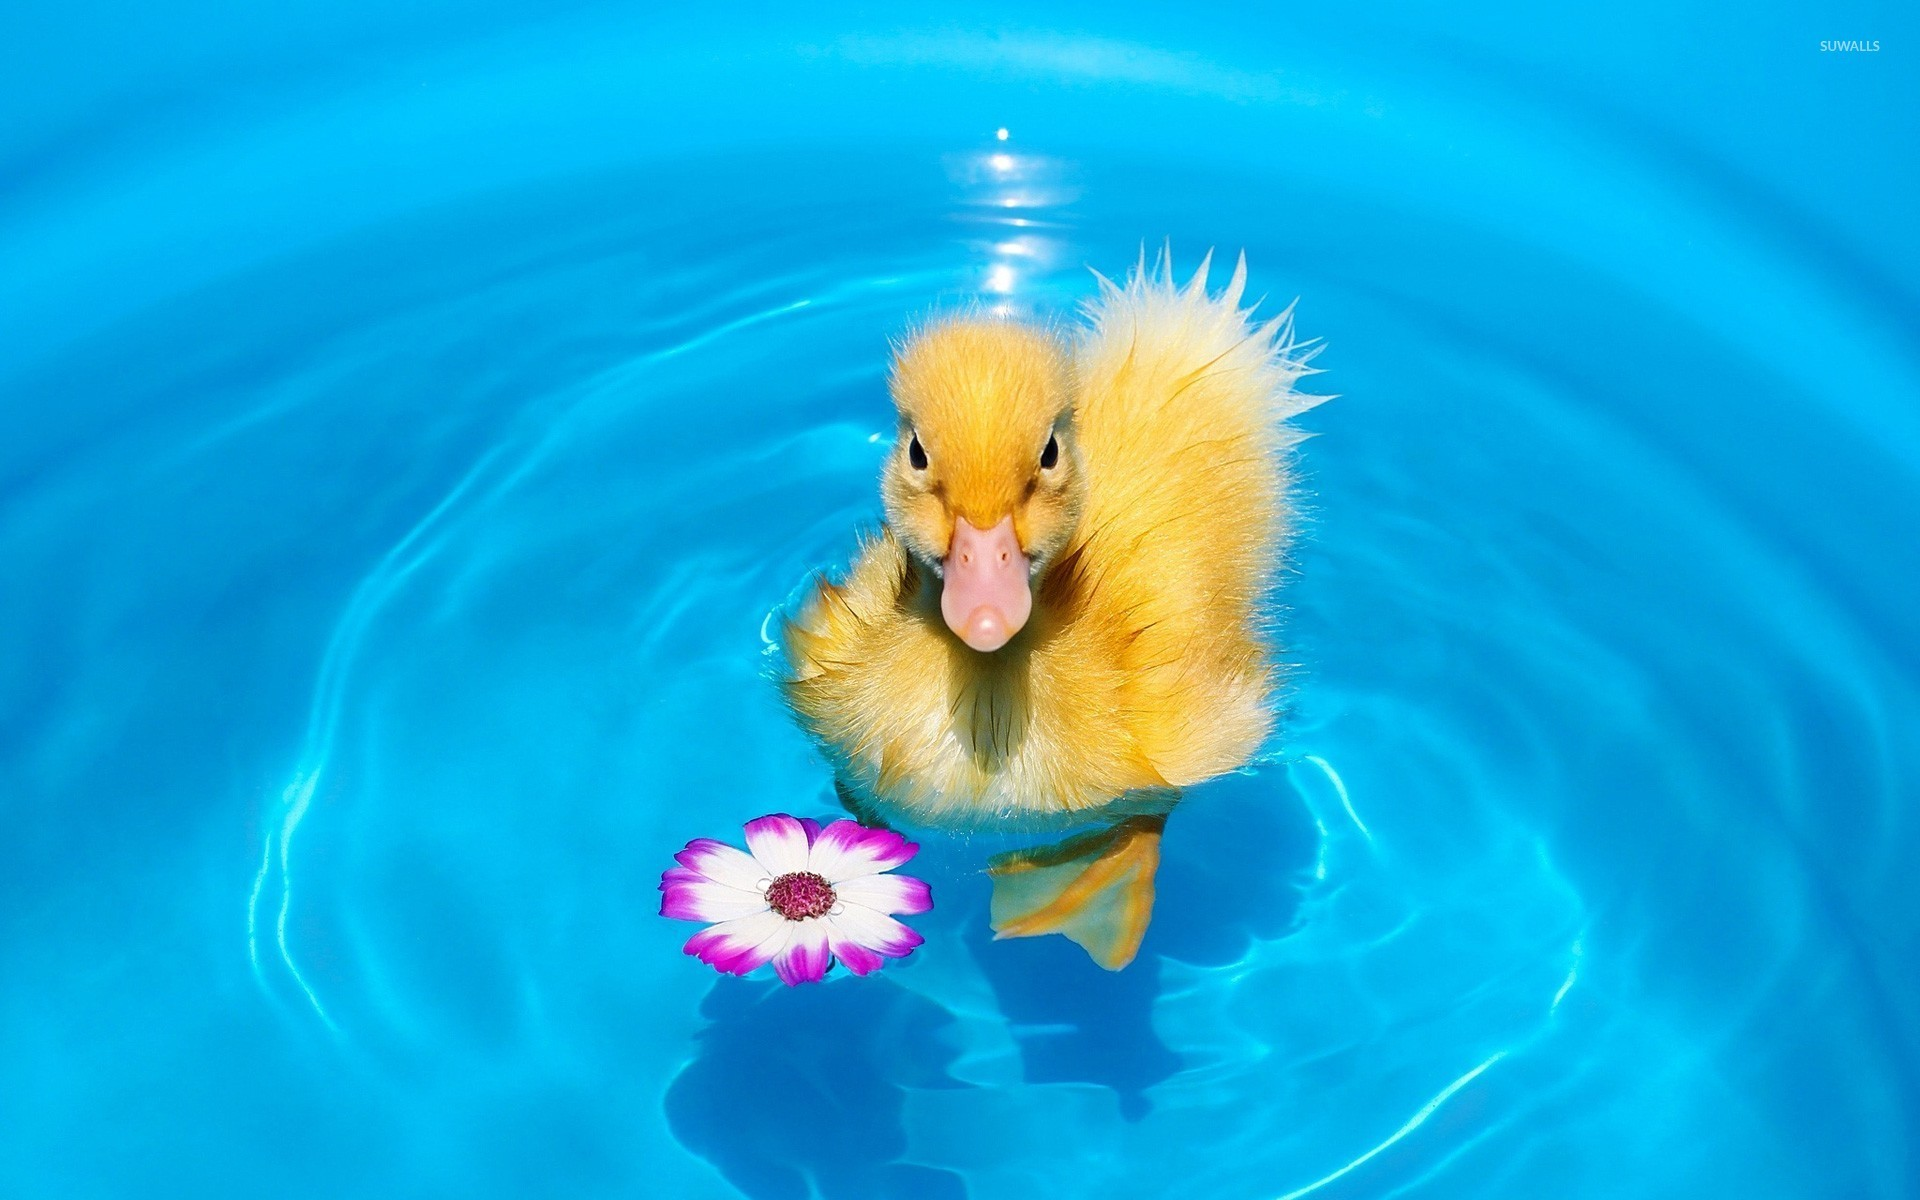 1920x1200 Swimming duckling wallpaper